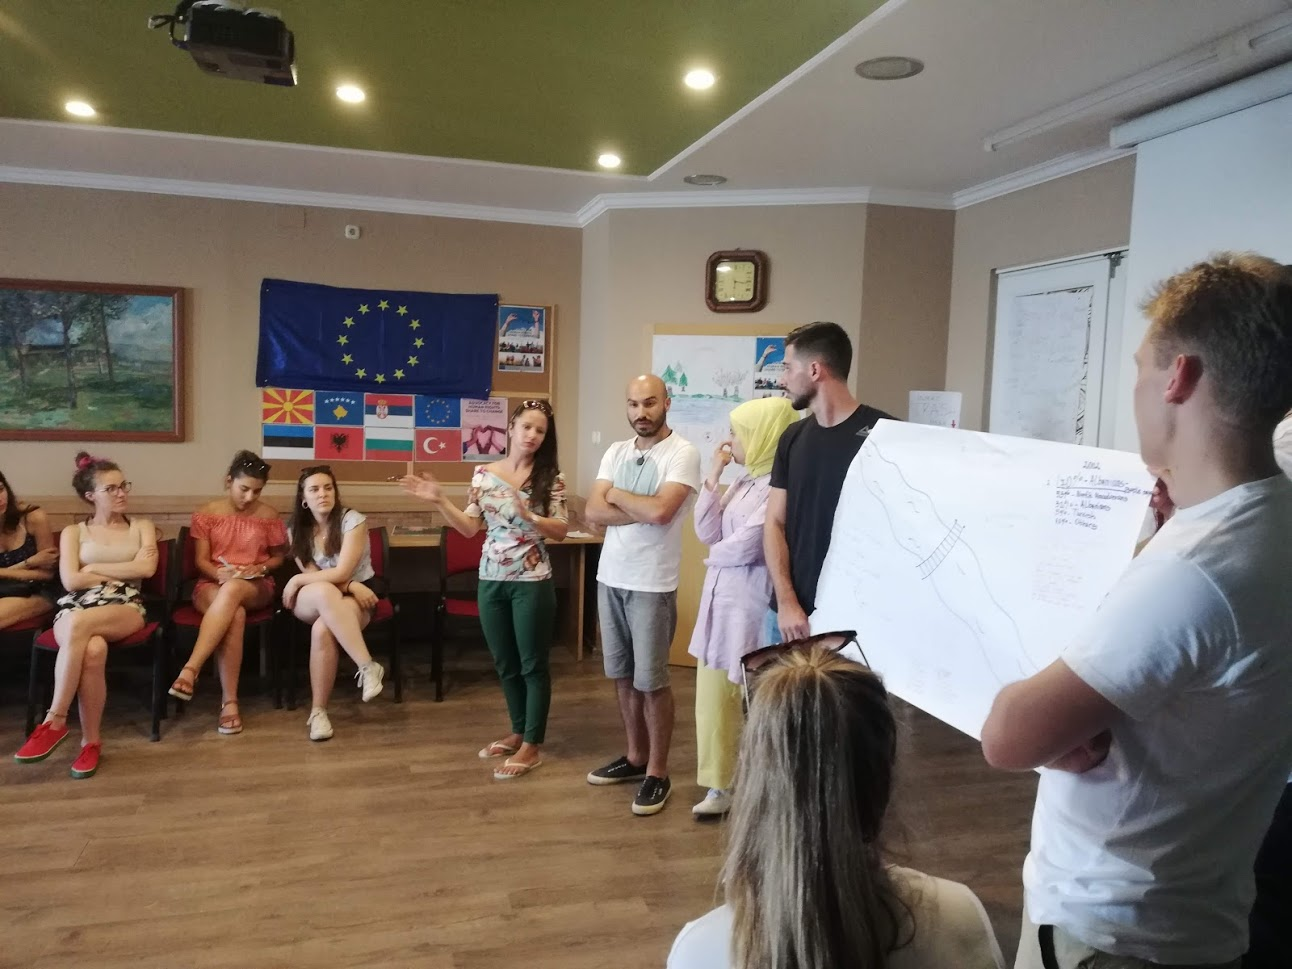 Youth Workers Supporters And Activists From 7 Countries Gathered In Struga To Work On The Topic Of Human Rights!